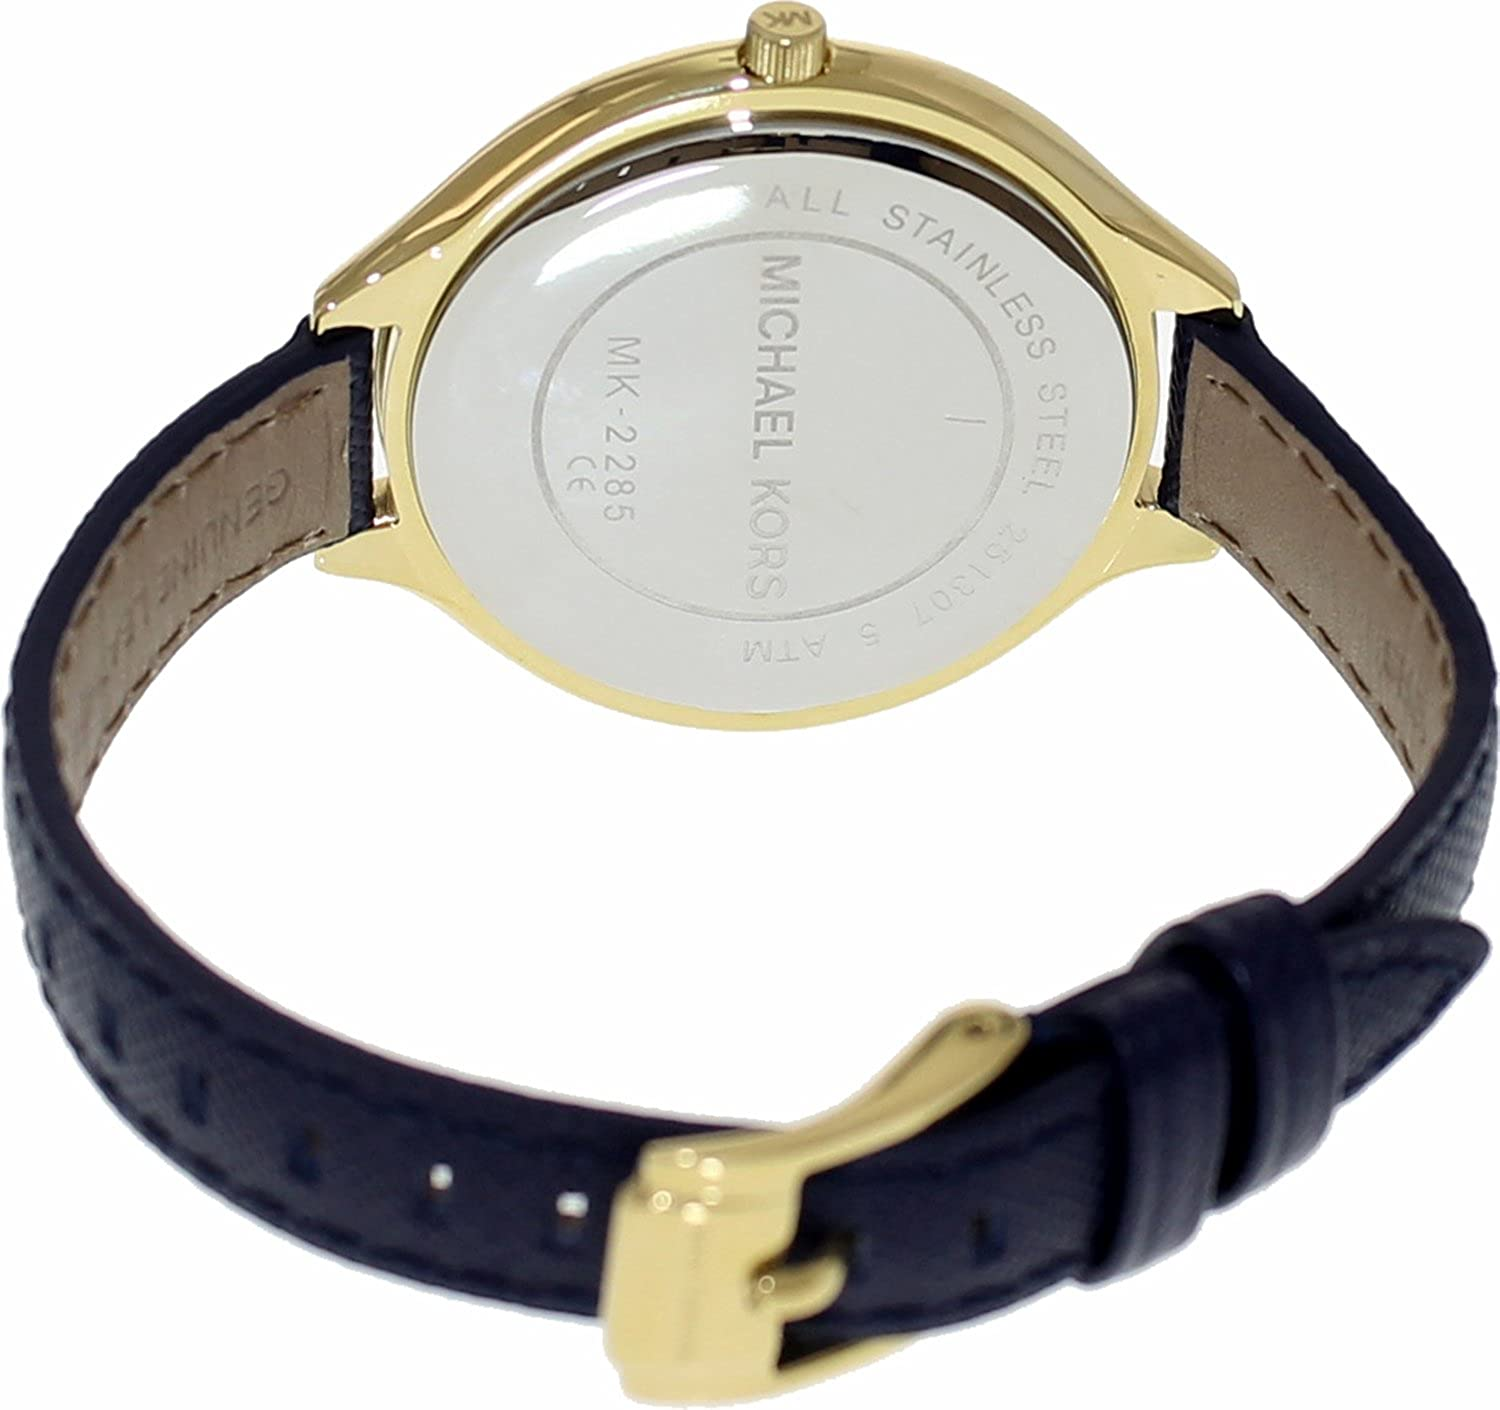 f43979201c08 Amazon.com  Michael Kors Mid-Size Runway Gold-Tone Dial Blue Leather Ladies  Watch MK2285  Michael Kors  Watches